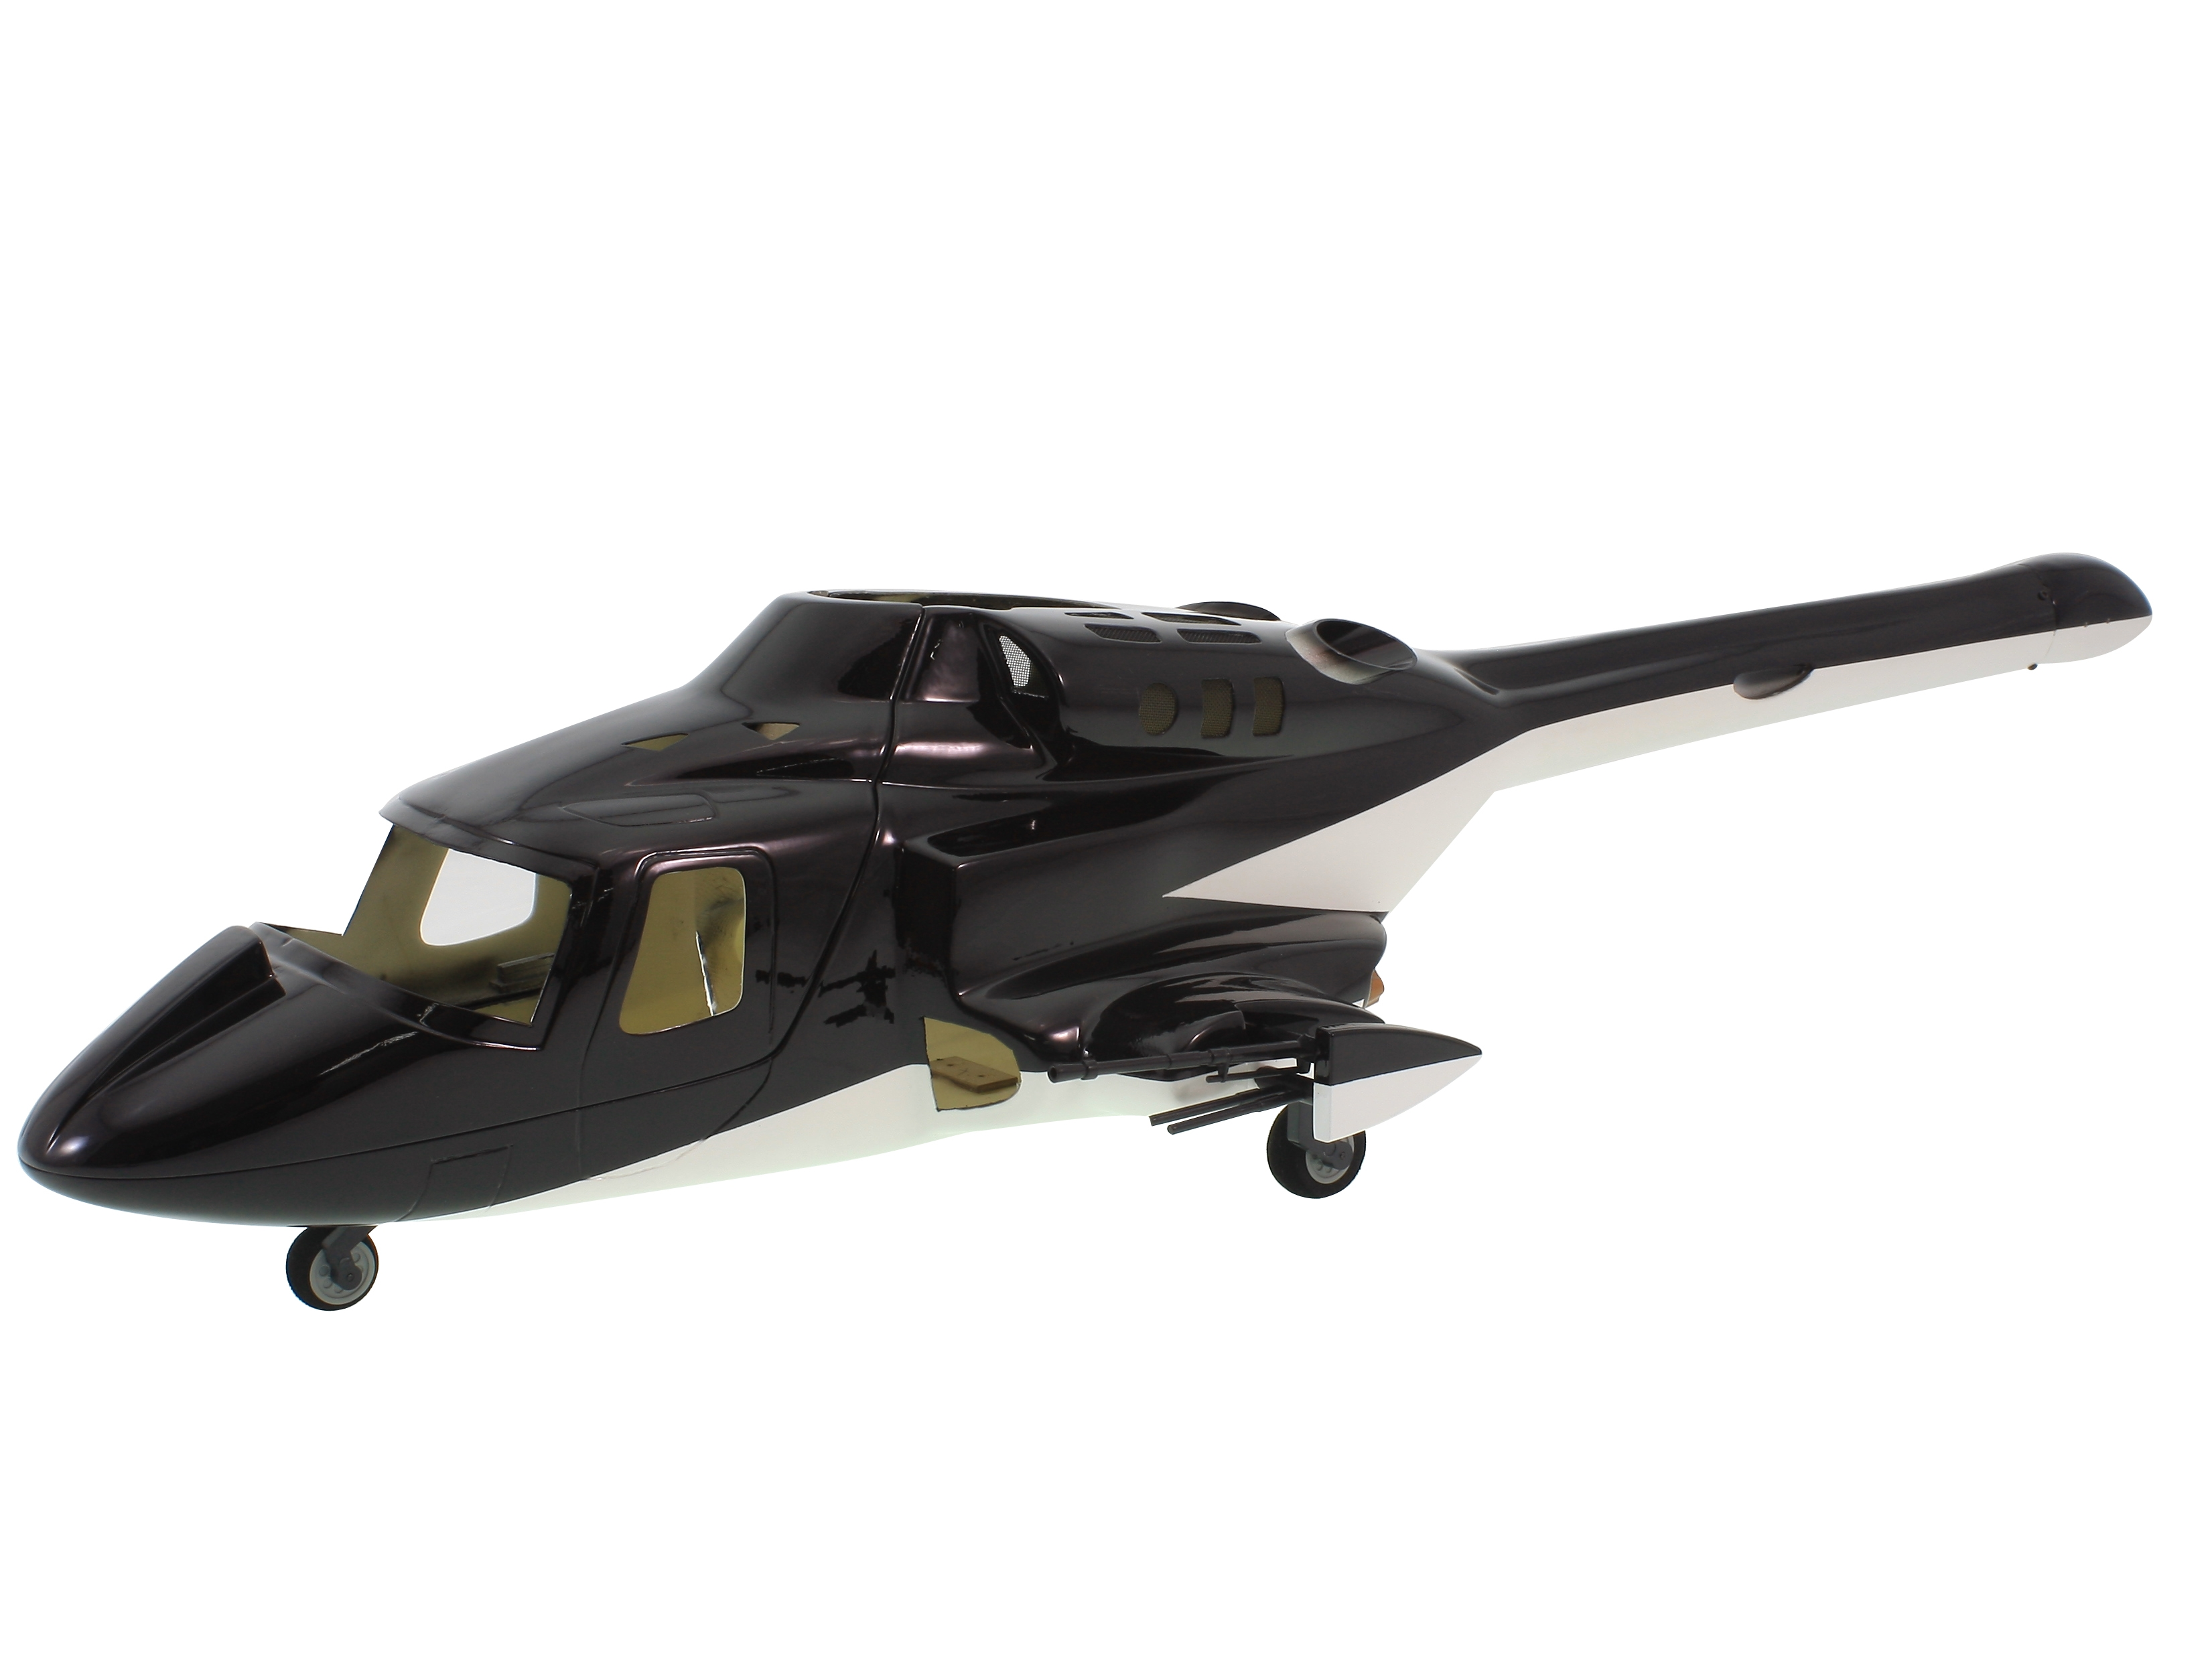 New Version Bell 222 Airwolf 450 Scale Body W/ Retracts&metal Landing Gear For ALIGN T-REX450X/XL/SE/SE V2 450 Helicopters